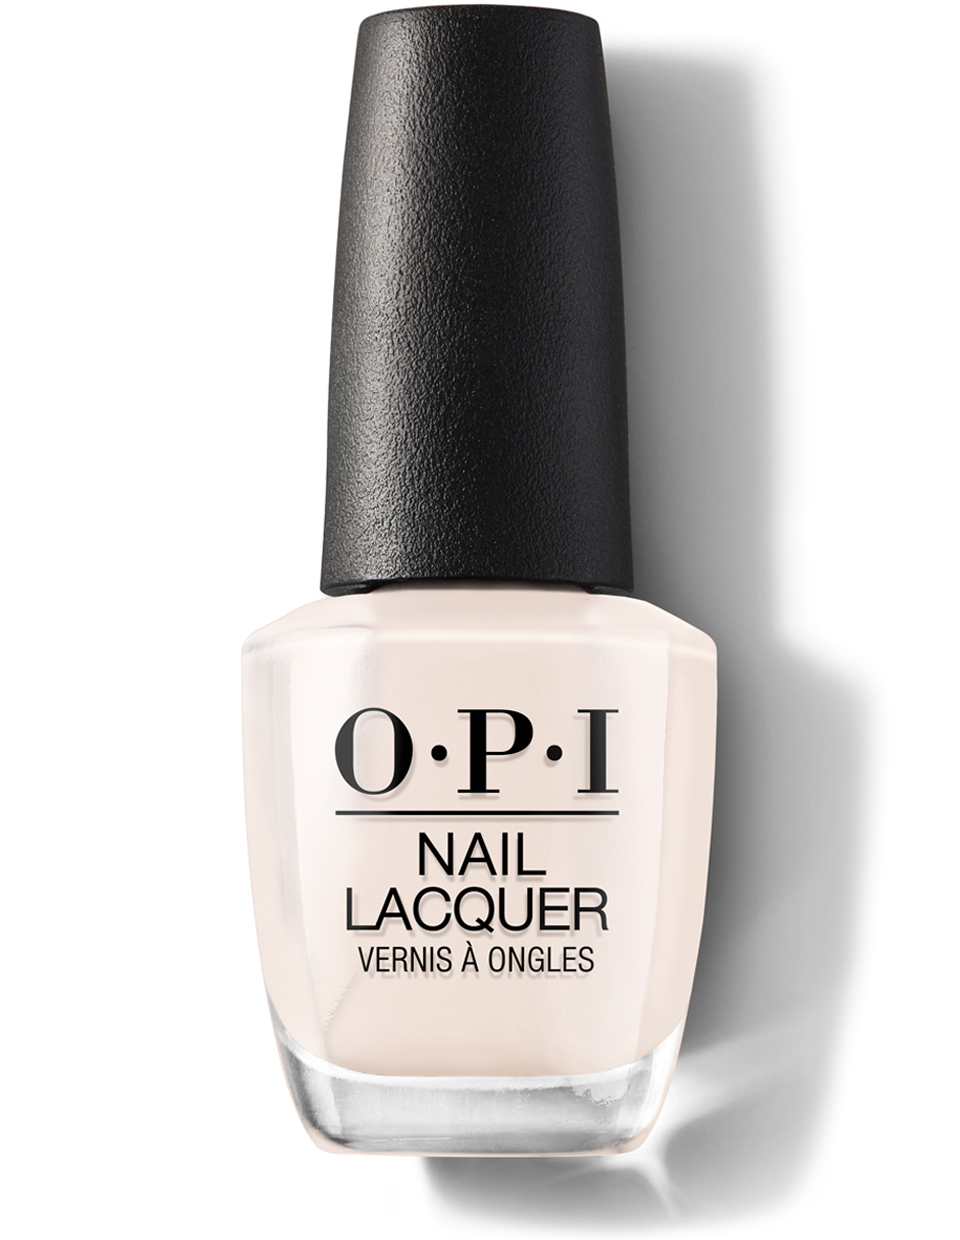 Be There in a Prosecco - Nail Lacquer | OPI